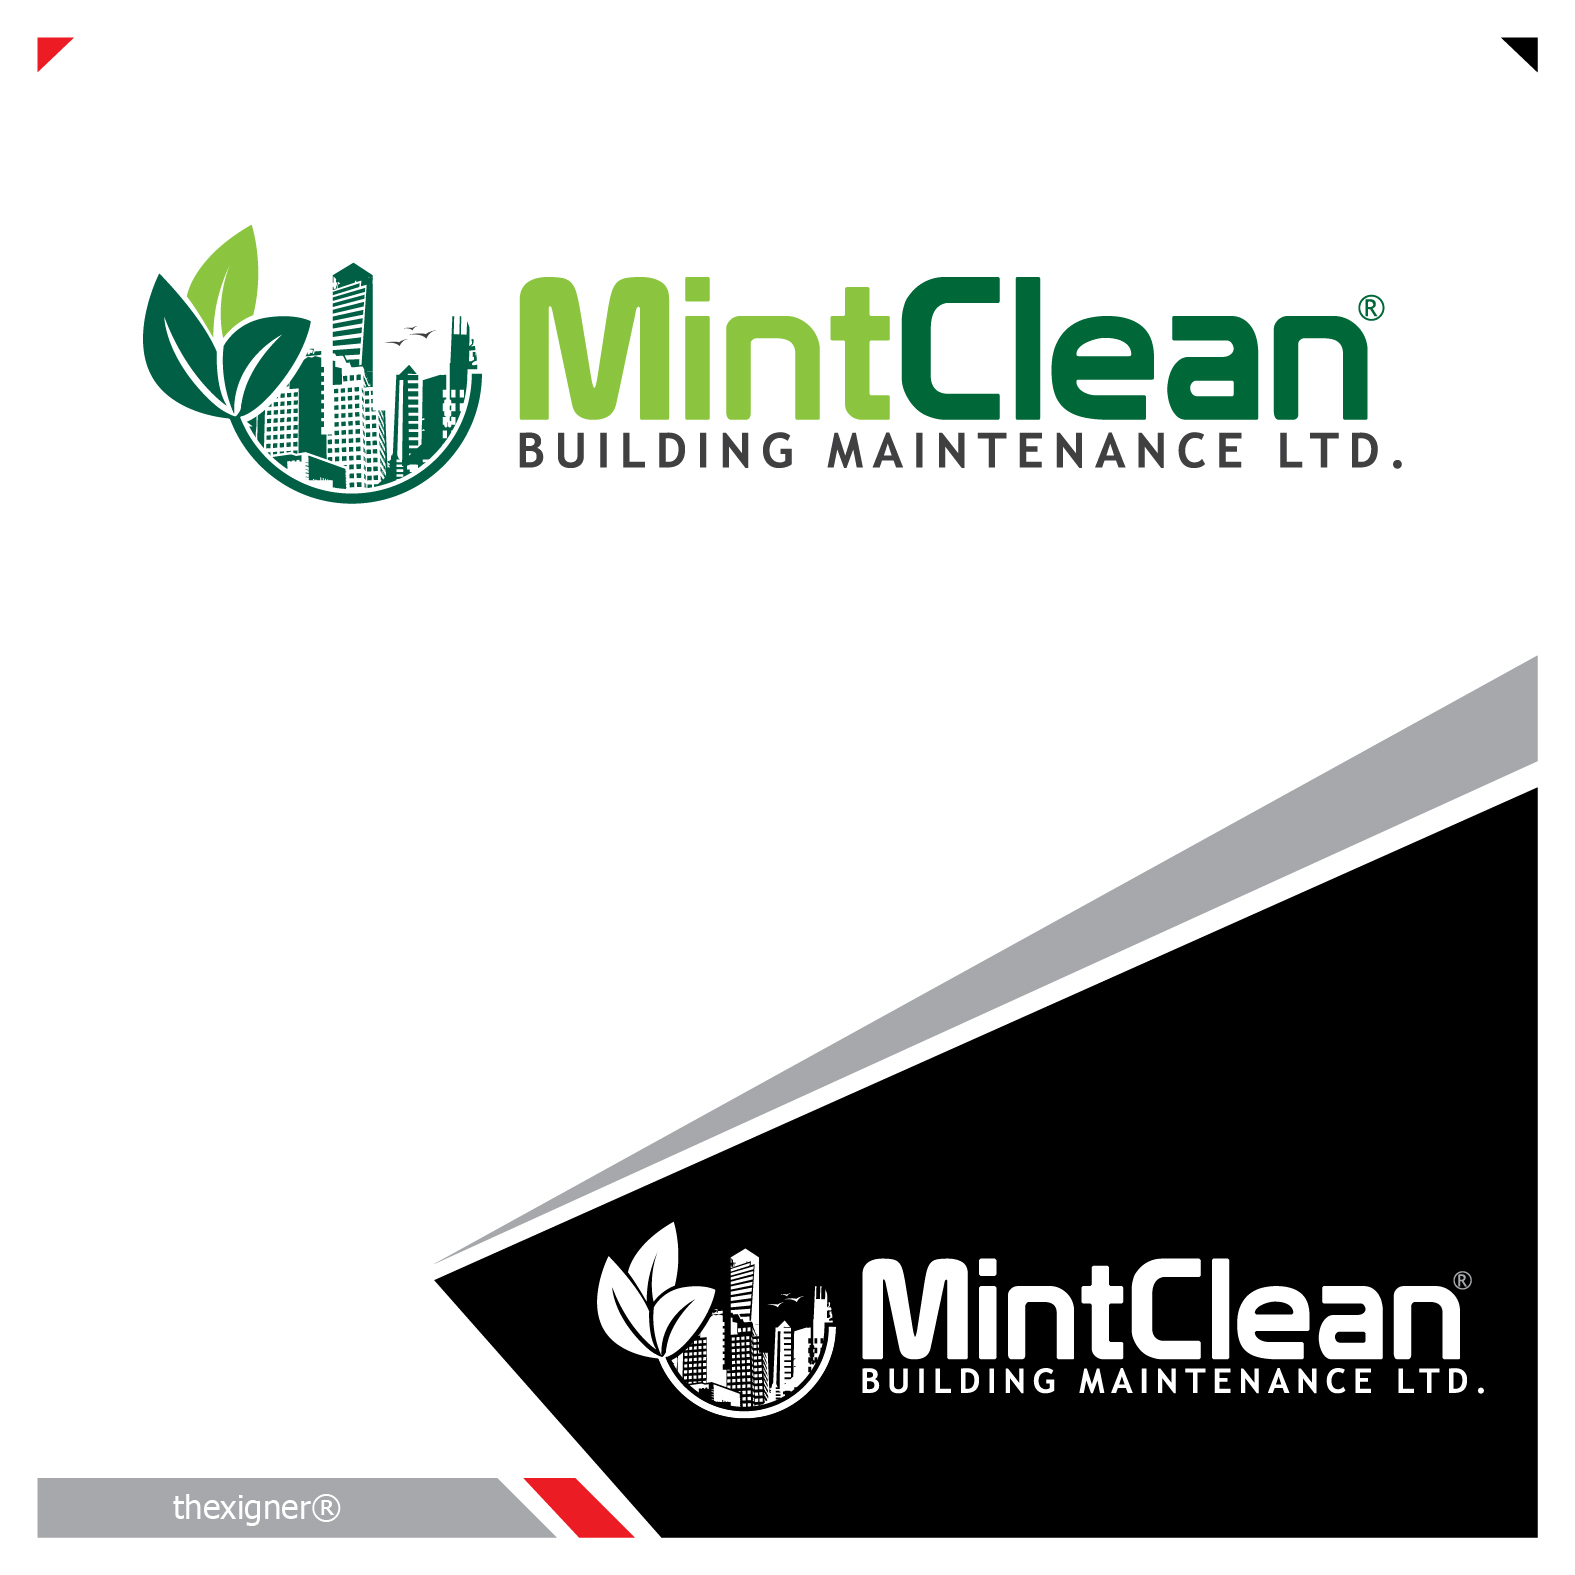 Logo Design by lagalag - Entry No. 78 in the Logo Design Contest MintClean Building Maintenance Ltd. Logo Design.